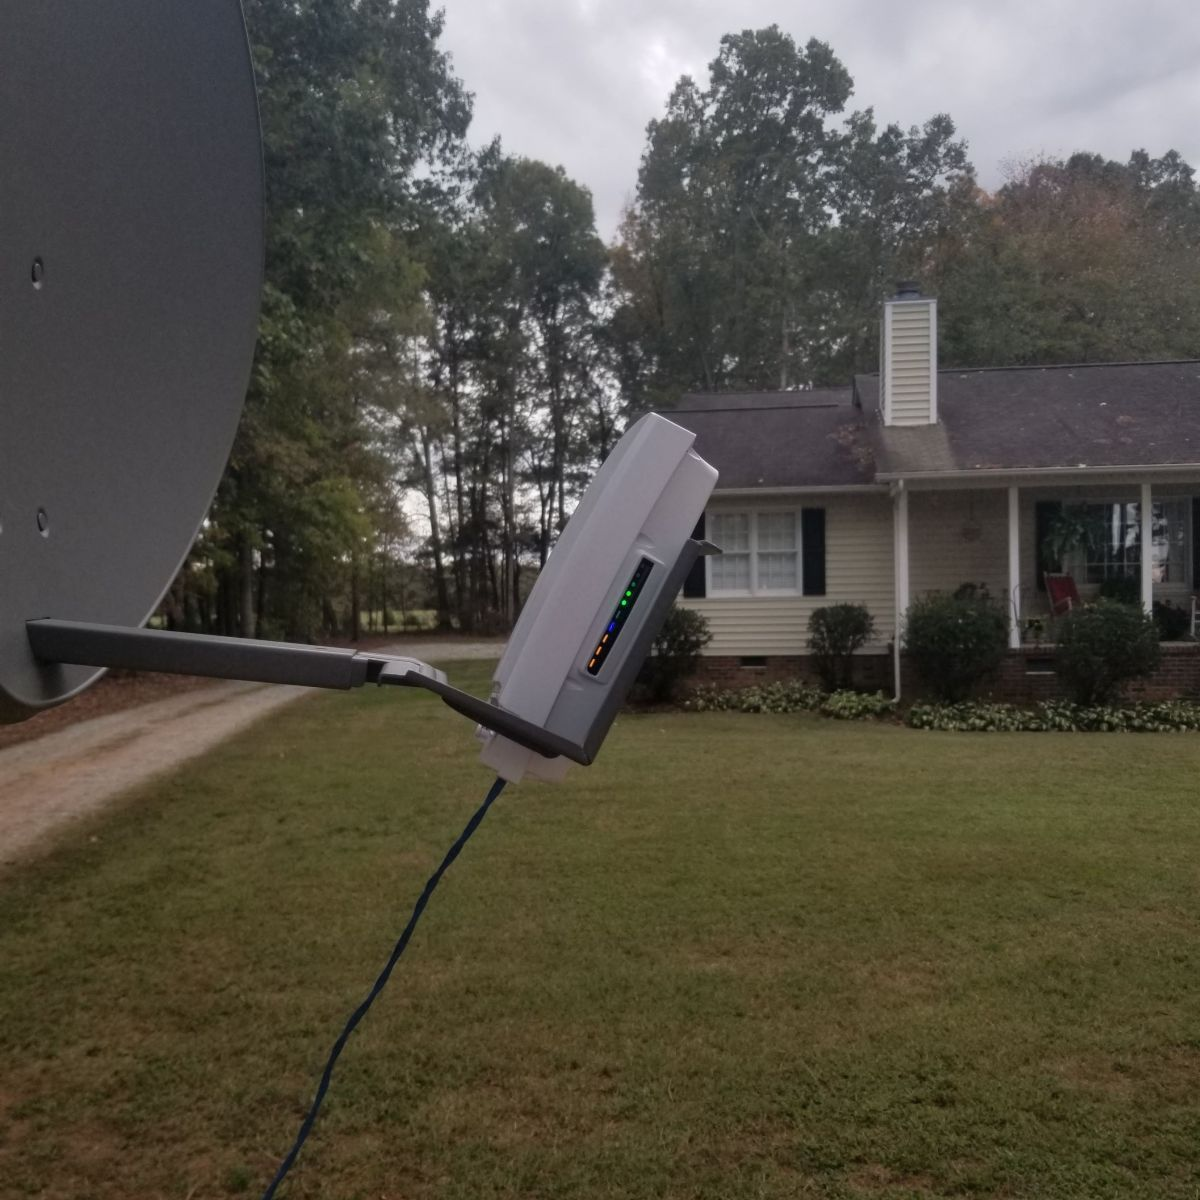 Successful fixed-wireless test